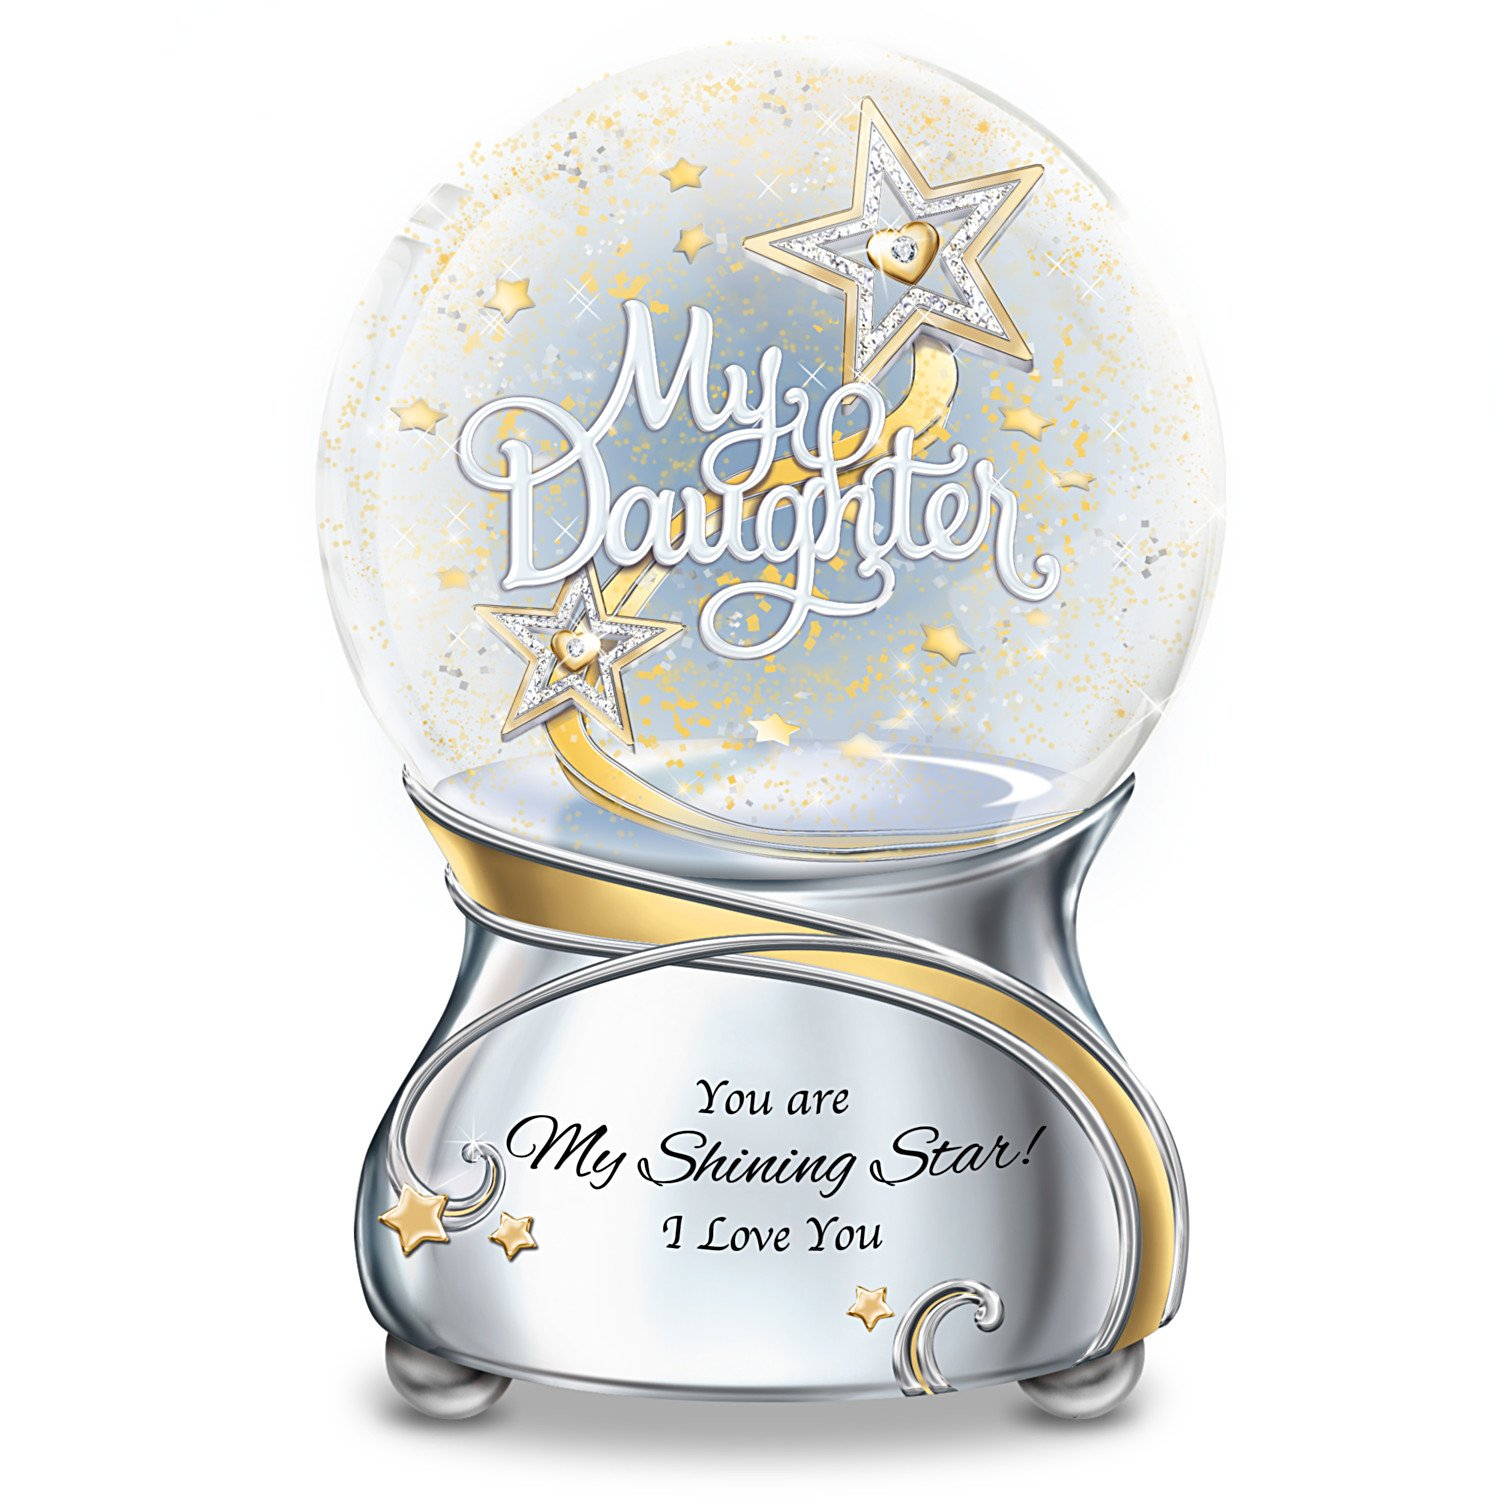 My Daughter You Are My Shining Star Illuminated Musical Glitter Globe Lights Up by The Bradford Exchange